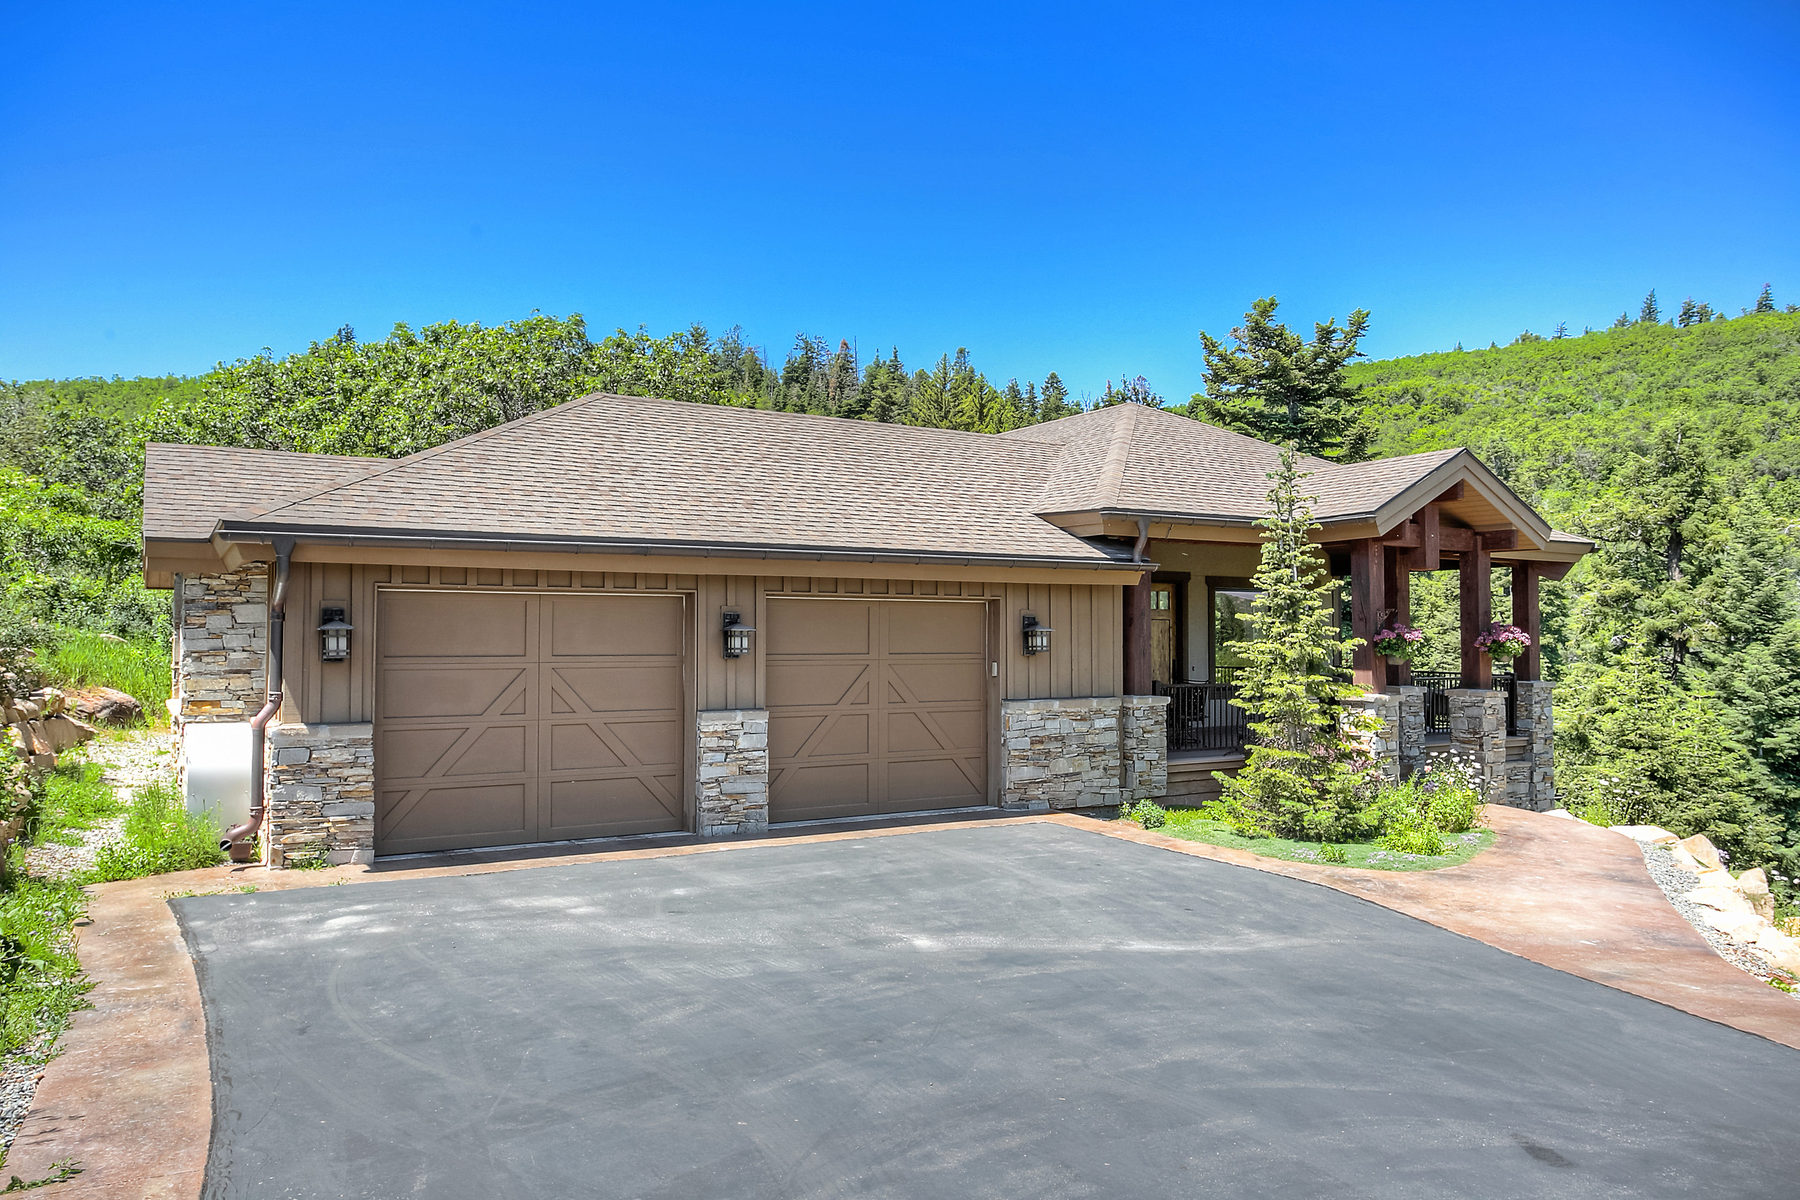 Villa per Vendita alle ore Moose Hollow Home with Views 4170 Moose Hollow Rd Park City, Utah 84098 Stati Uniti